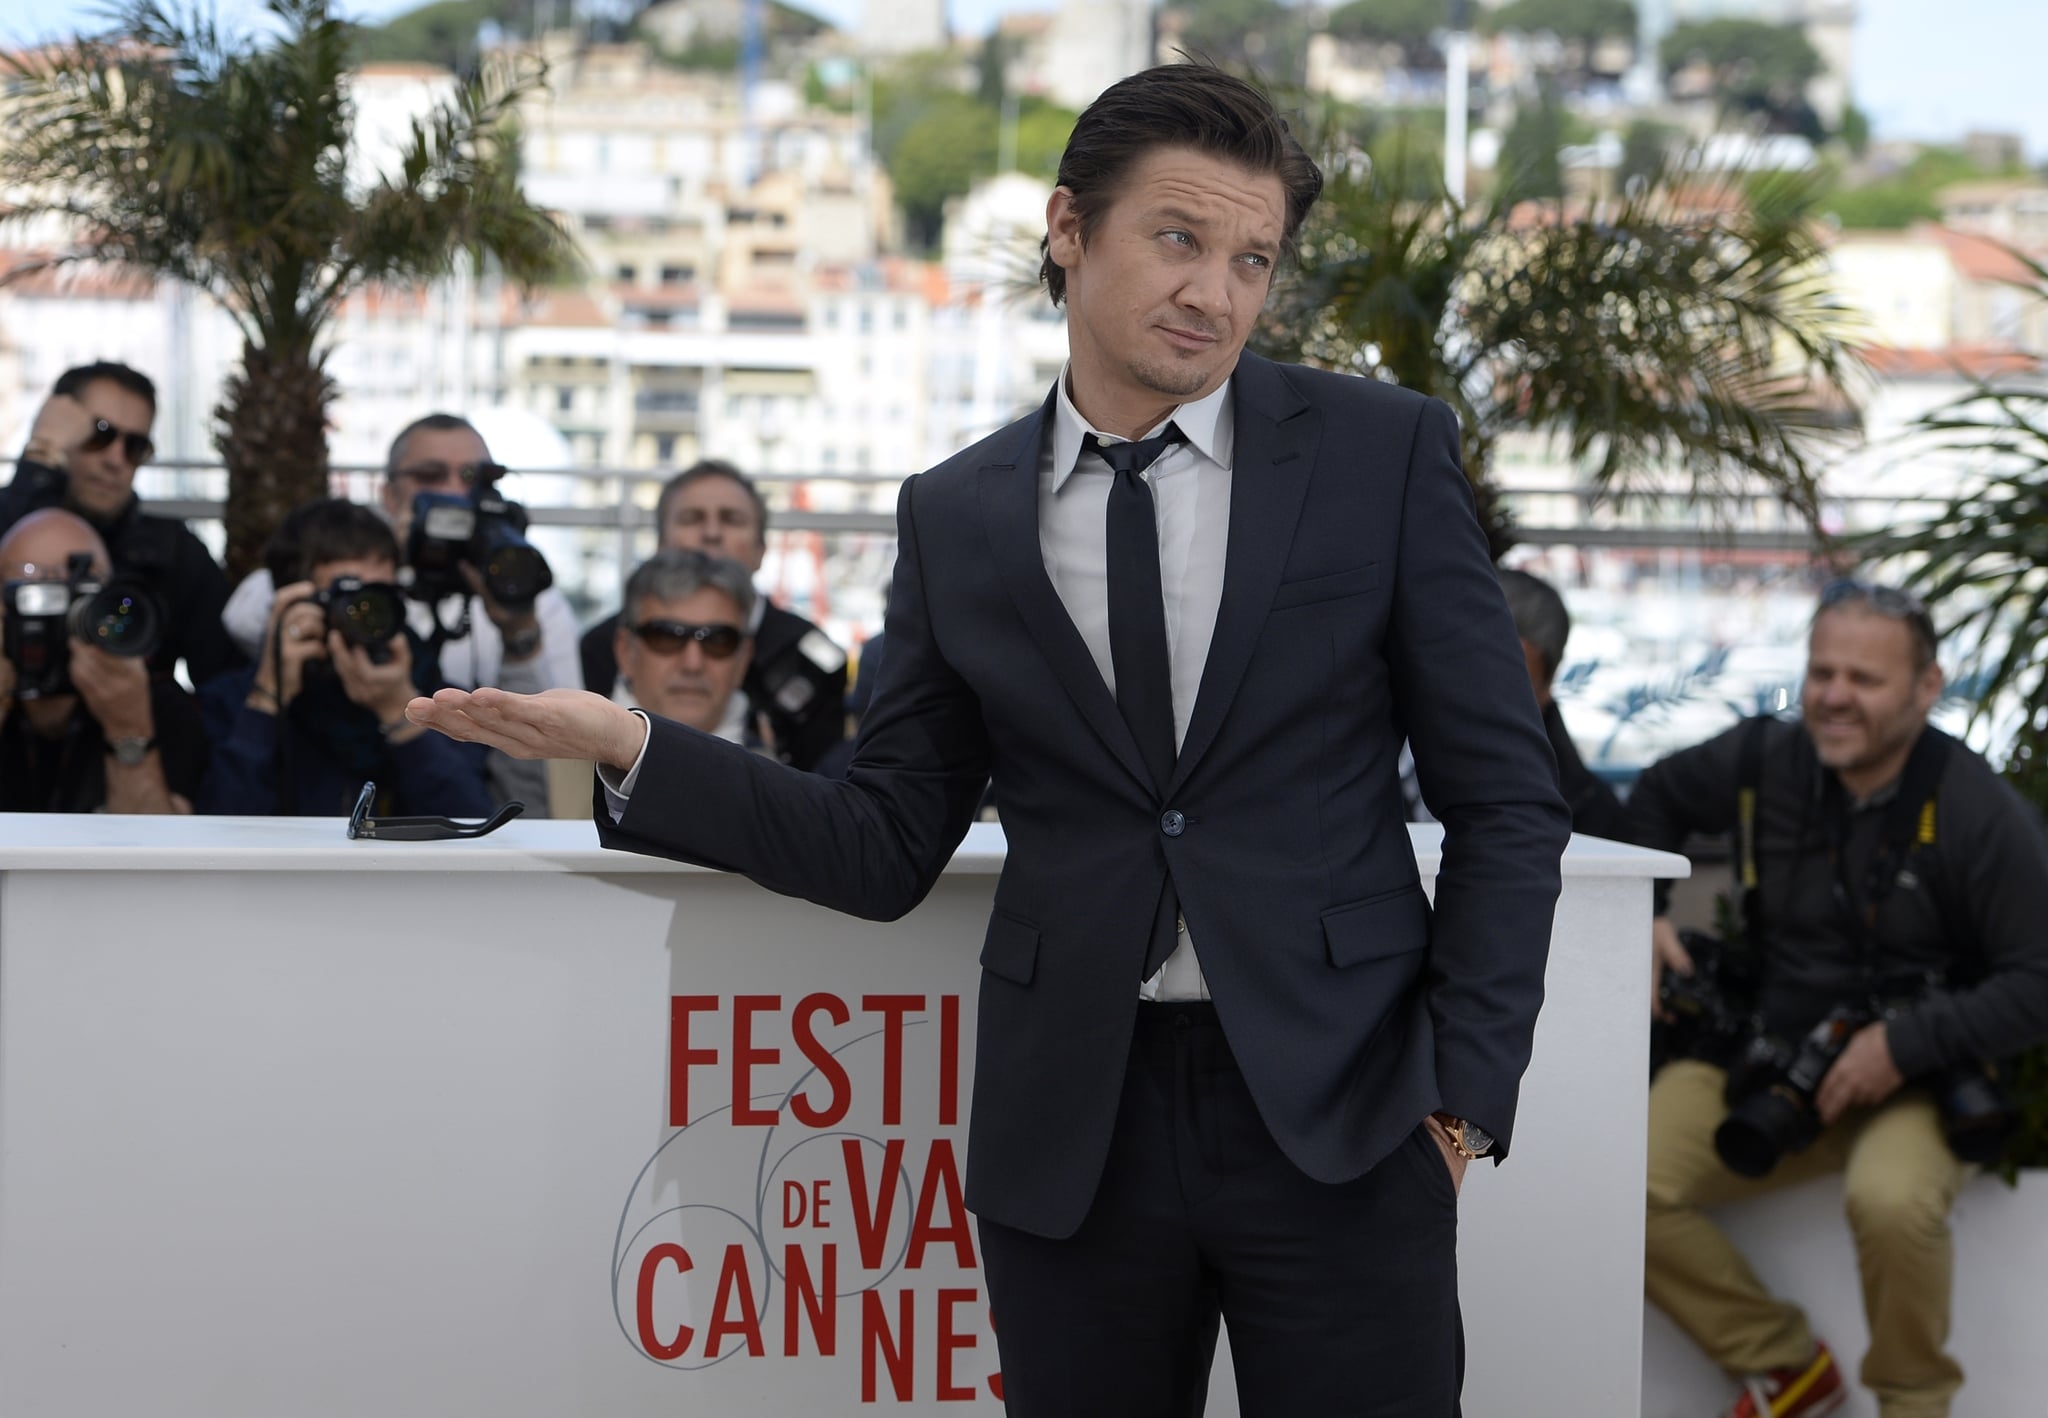 Jeremy Renner joked around during the photocall for The Immigrant in Cannes on Friday.